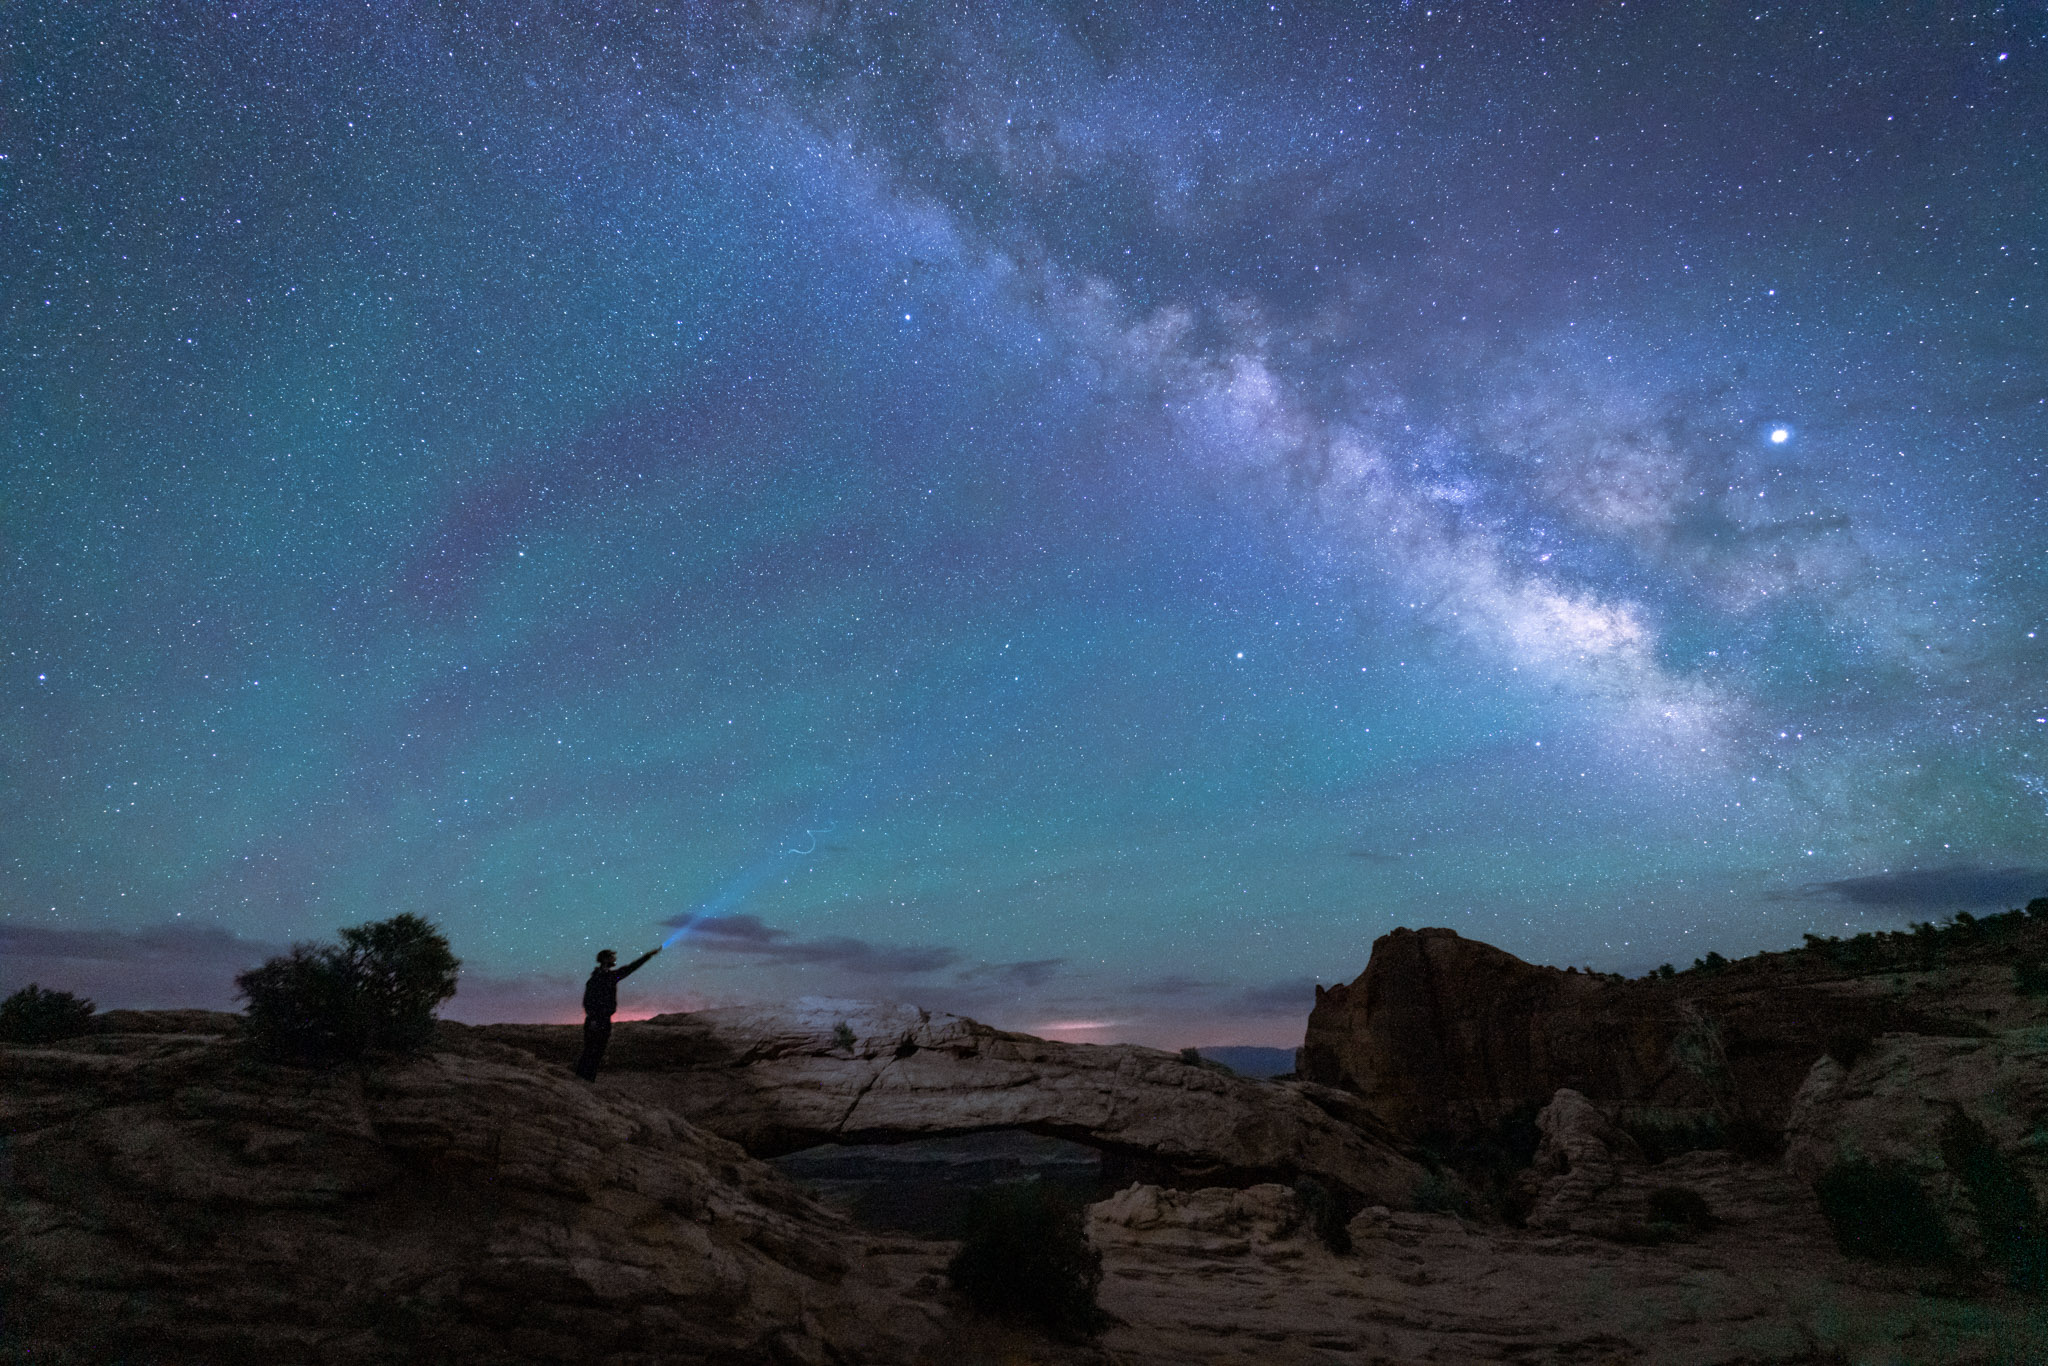 The milky way over the Canyonlands